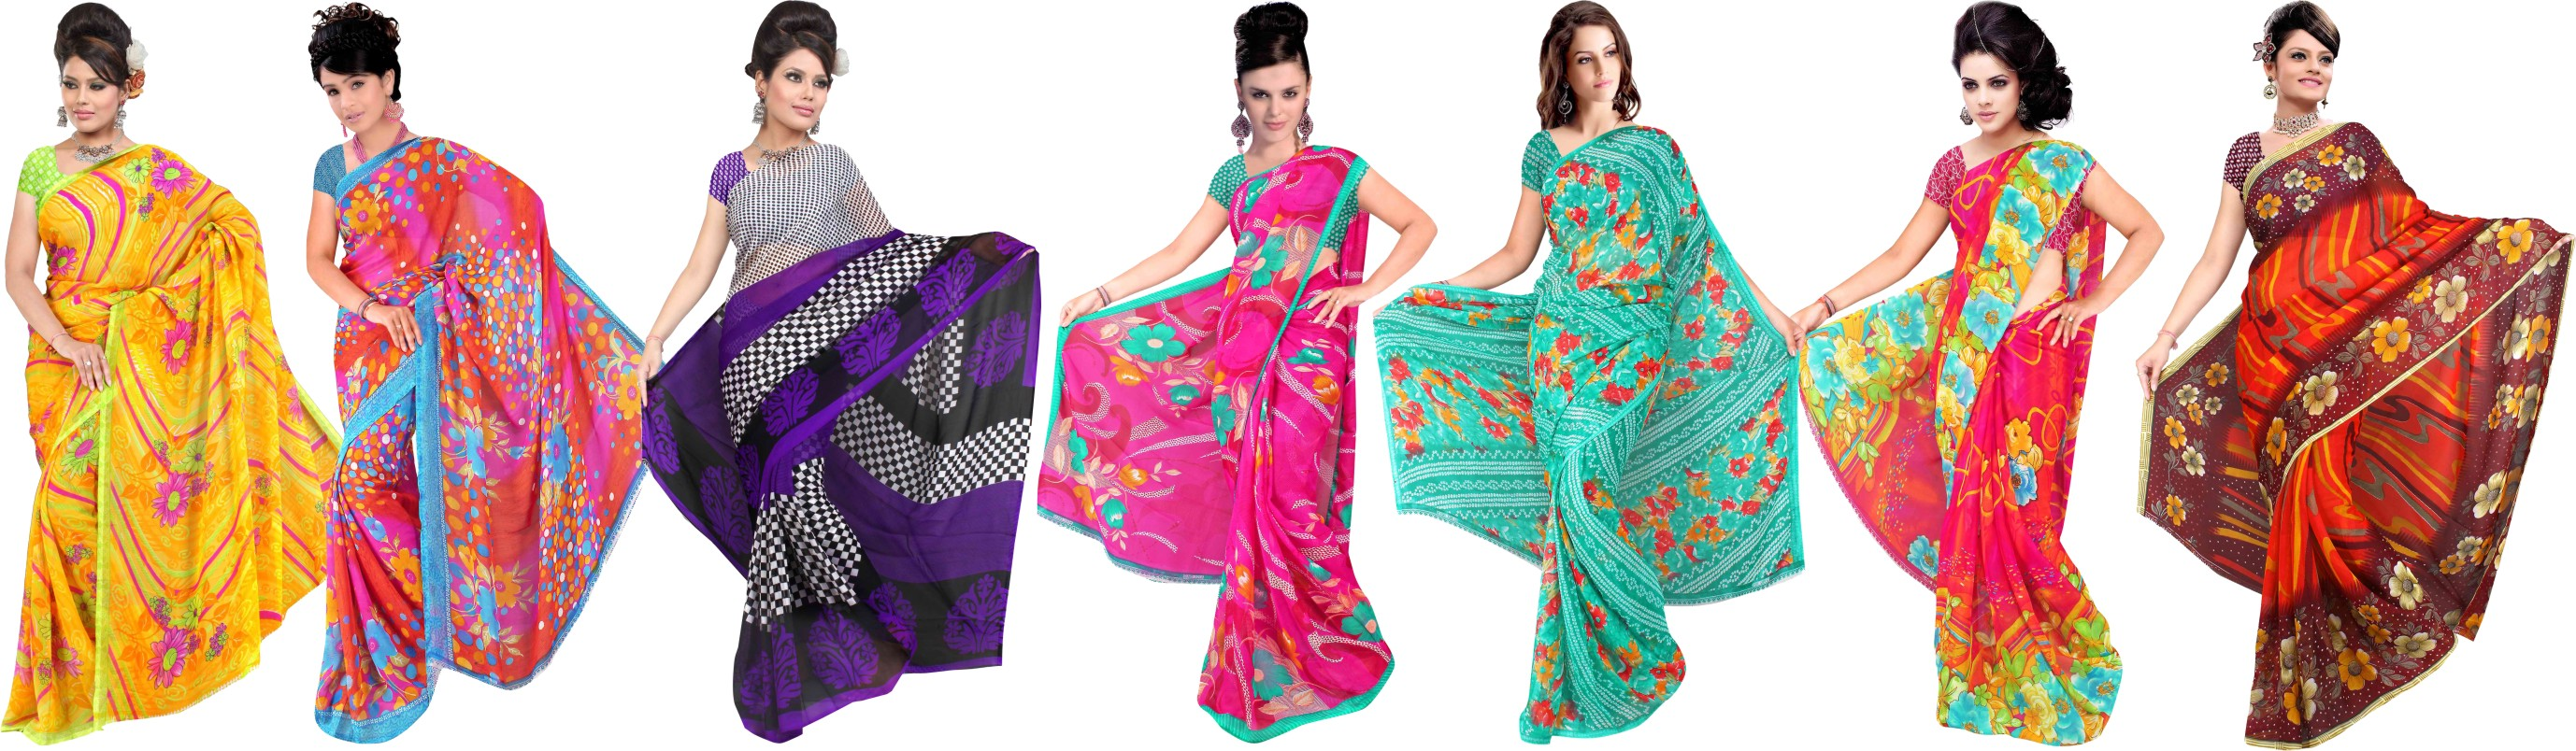 Itka 7 Georgette Sarees at Rs.1799